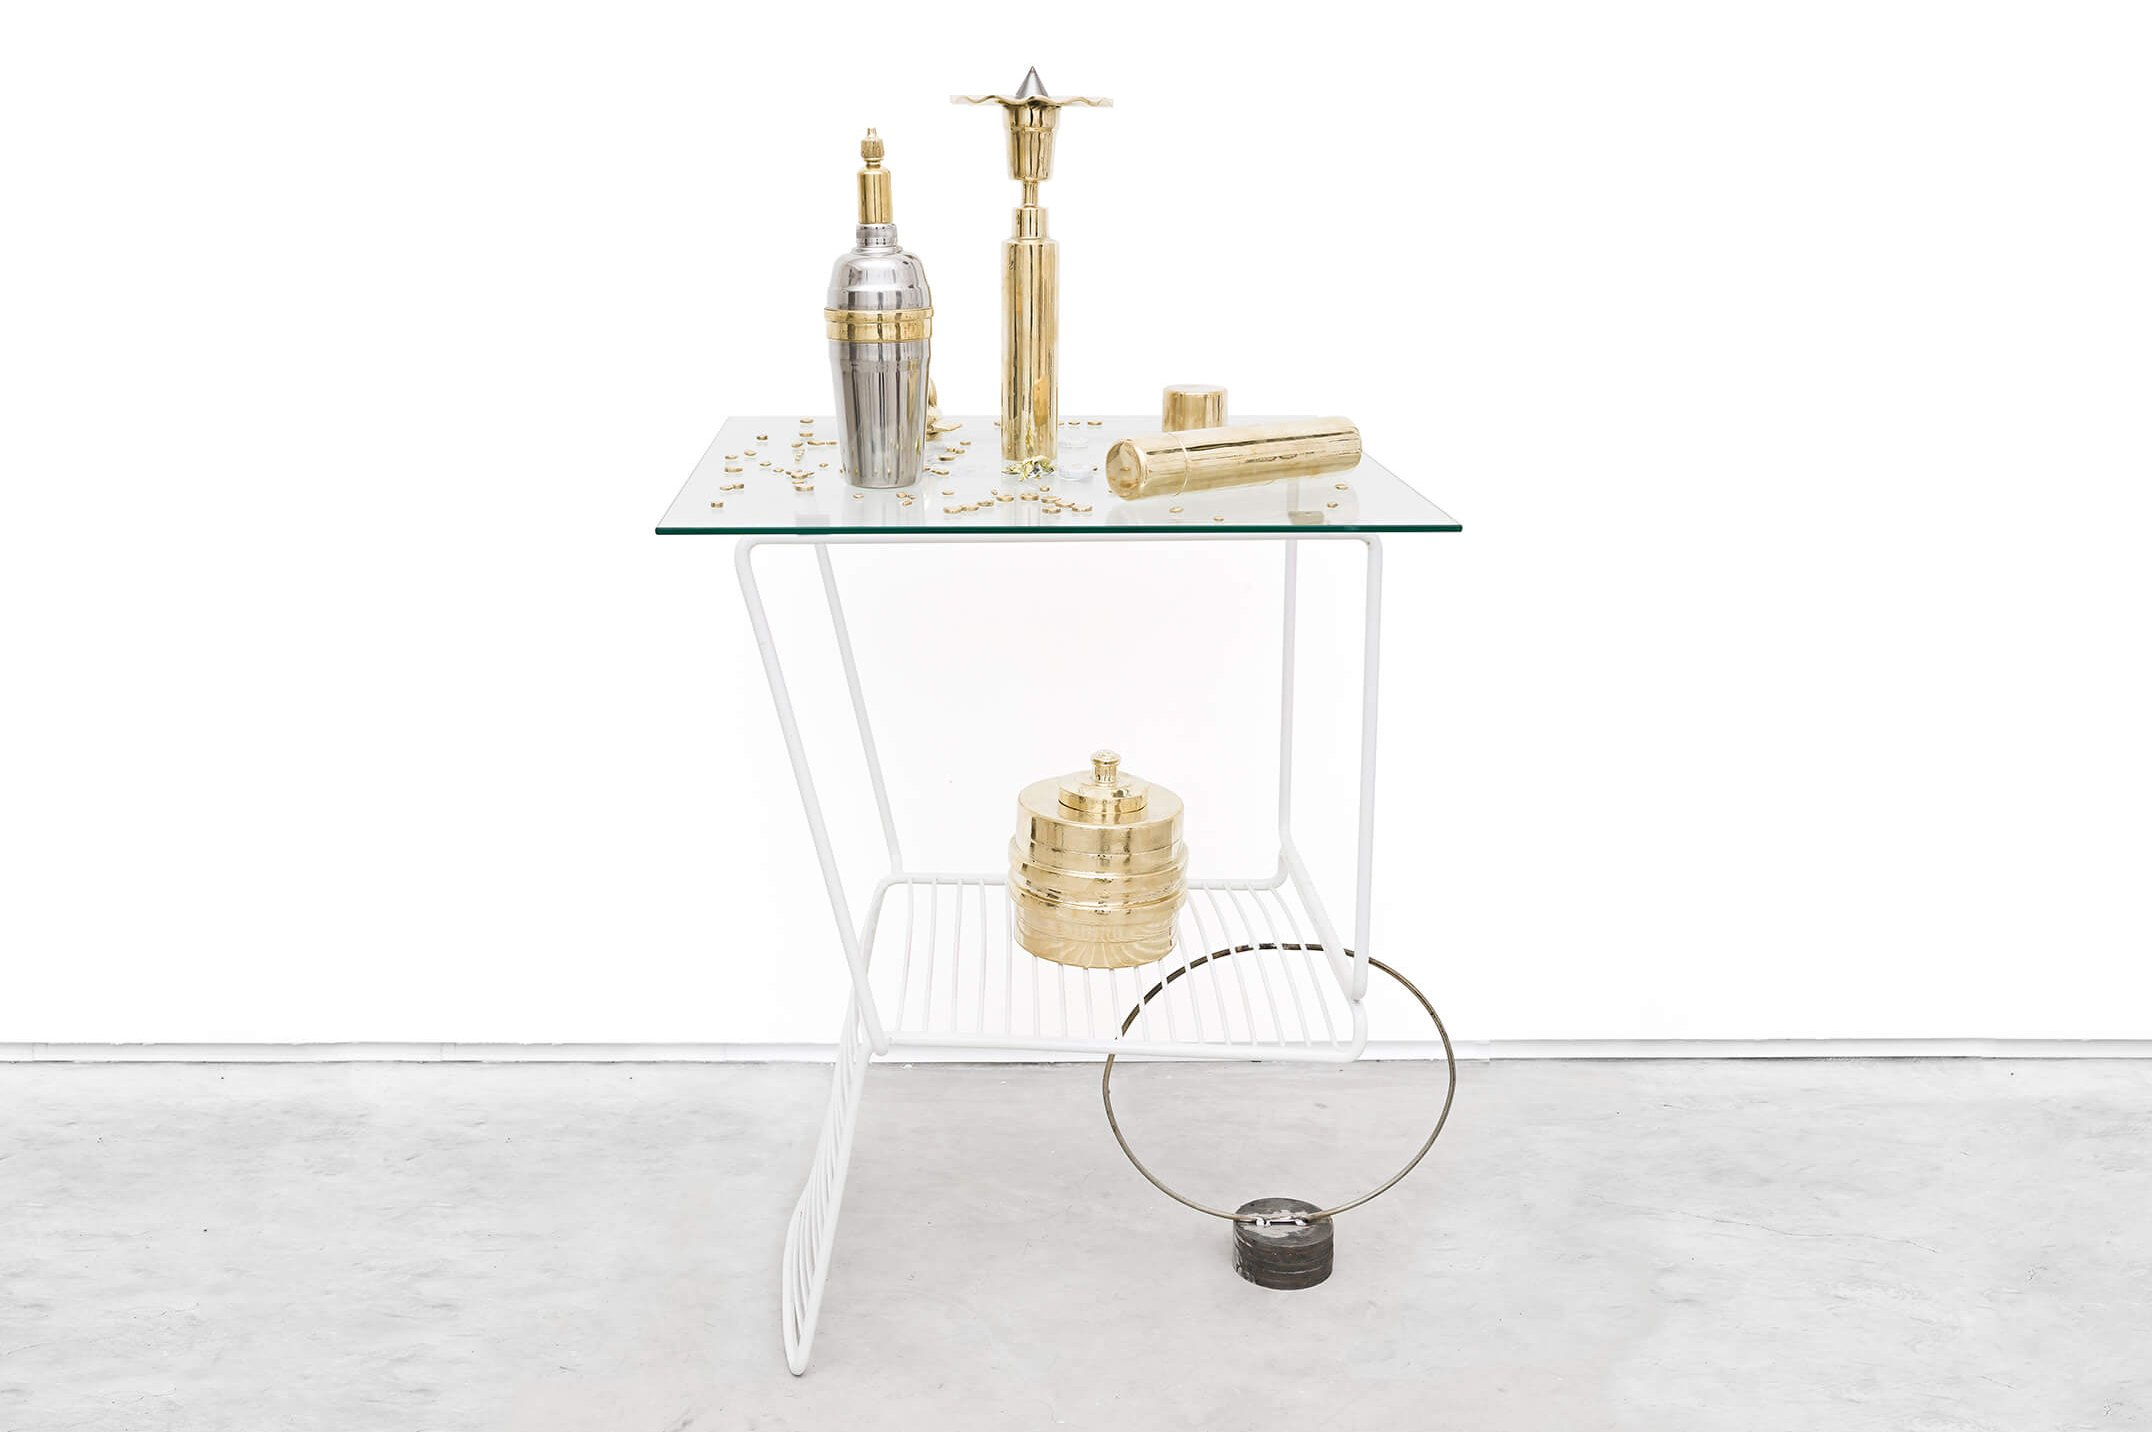 Adriano Costa,<em>Chair When Coffee Table / Little Trophies</em>, 2015,chair, glass top, metal ring and pieces of iron / polished brass knickknacks and aluminum shaker,113 × 70 × 70 cm - Mendes Wood DM